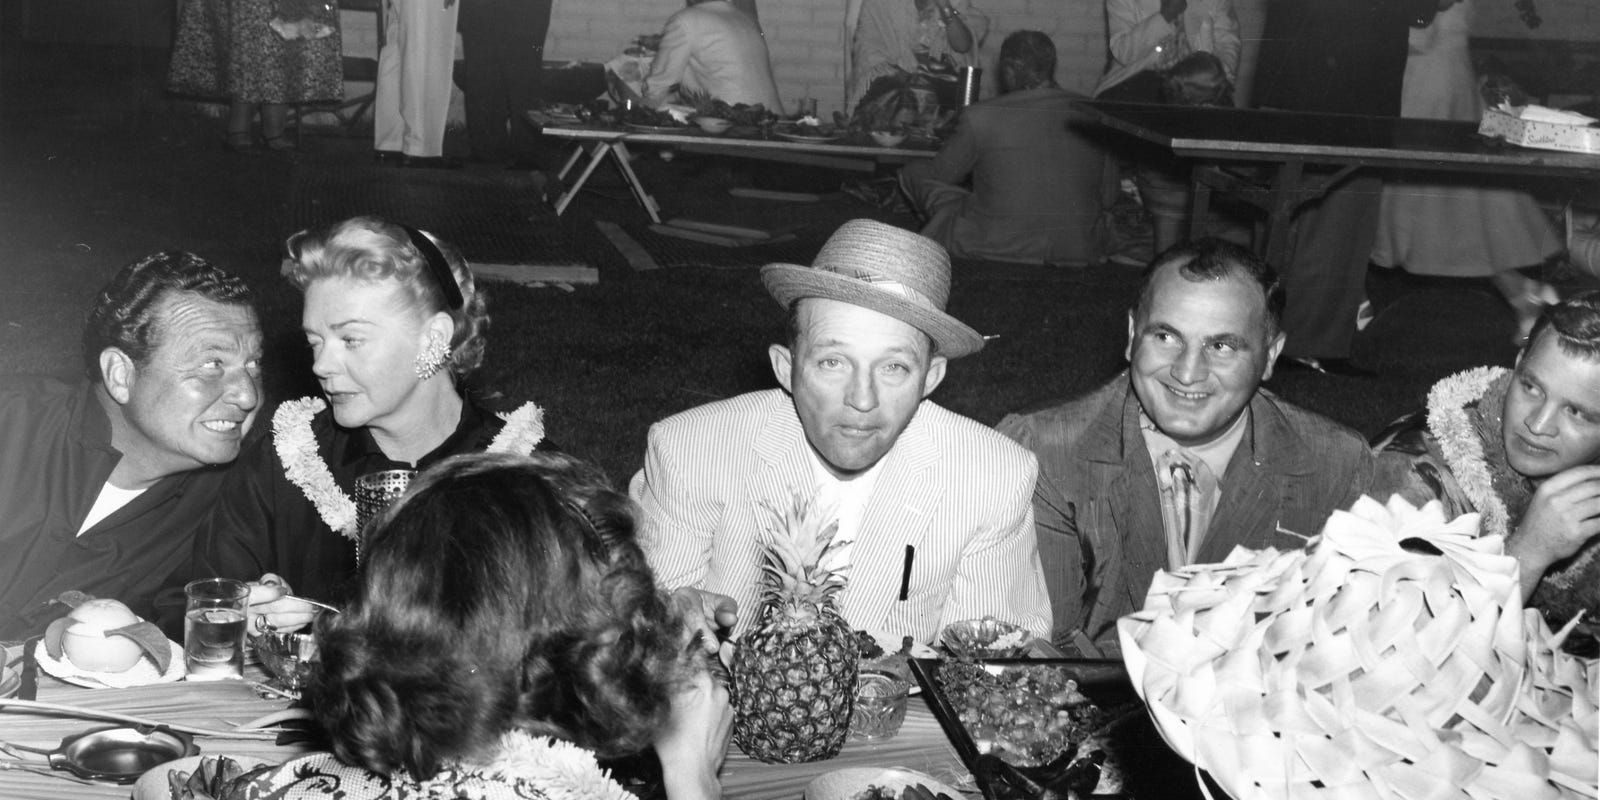 c468057ae39 Bing Crosby had his own associations with the mafia